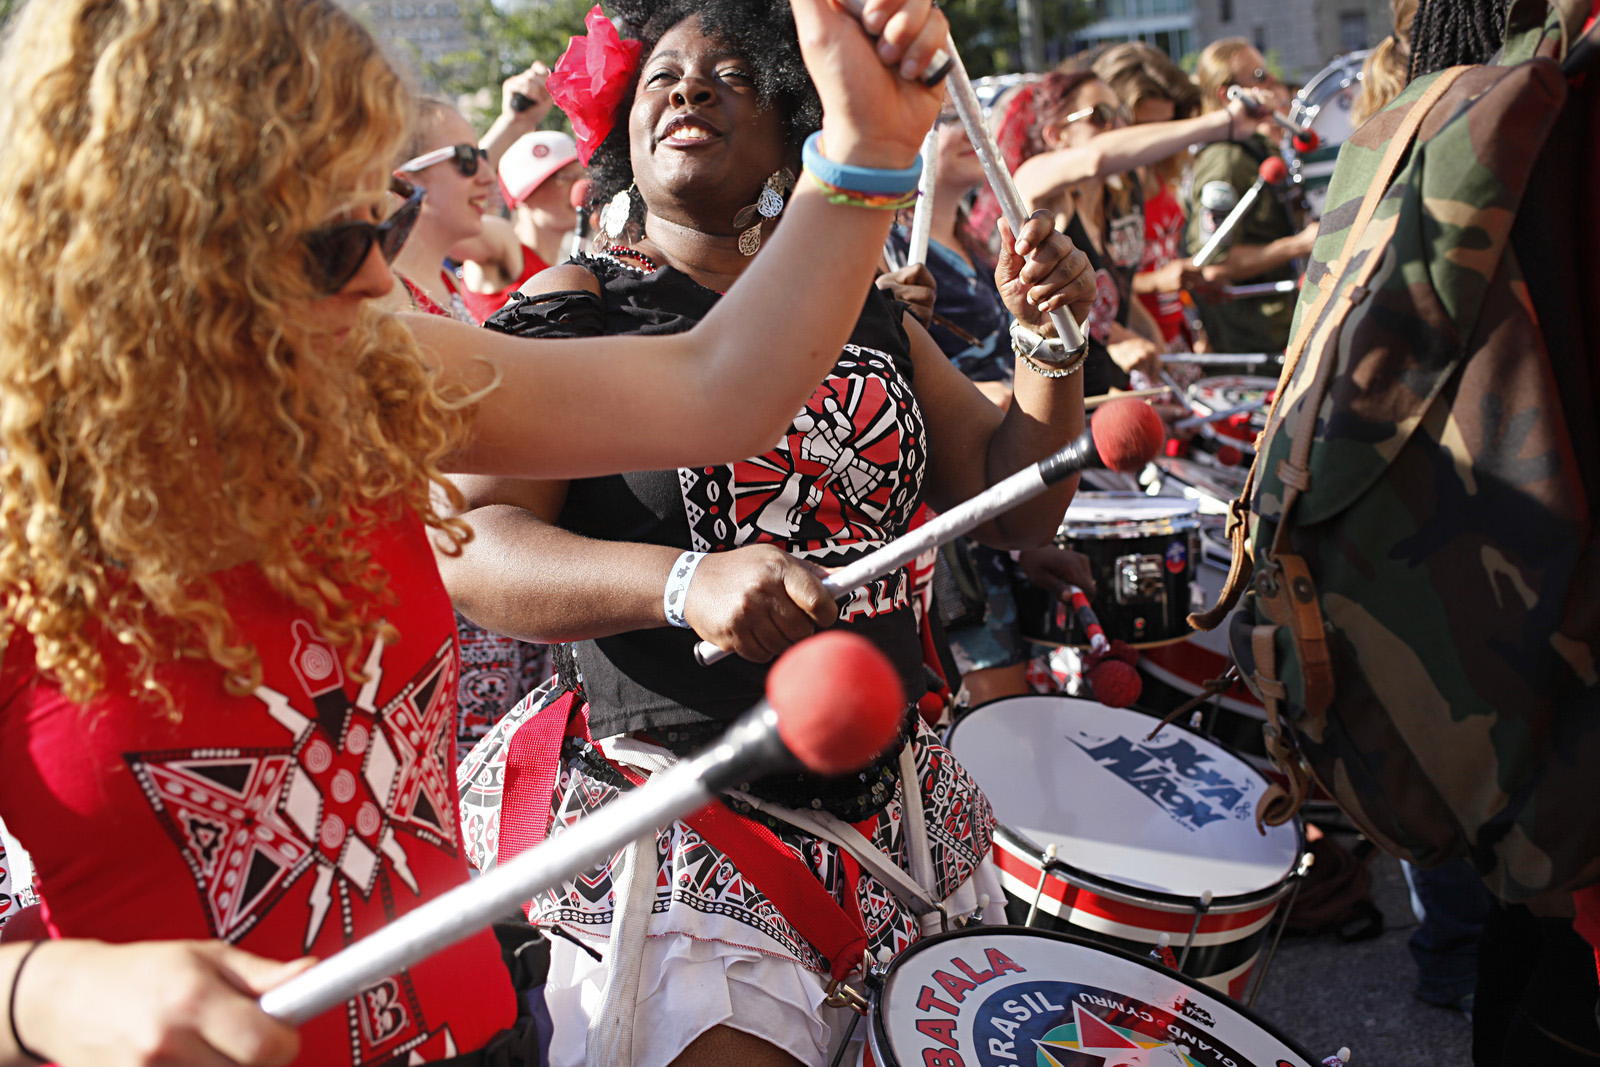 Batala NYC, a group specializing in northeastern Brazilian drumming, dance as they play -- and soon have all the musicians around them moving and grooving, too.